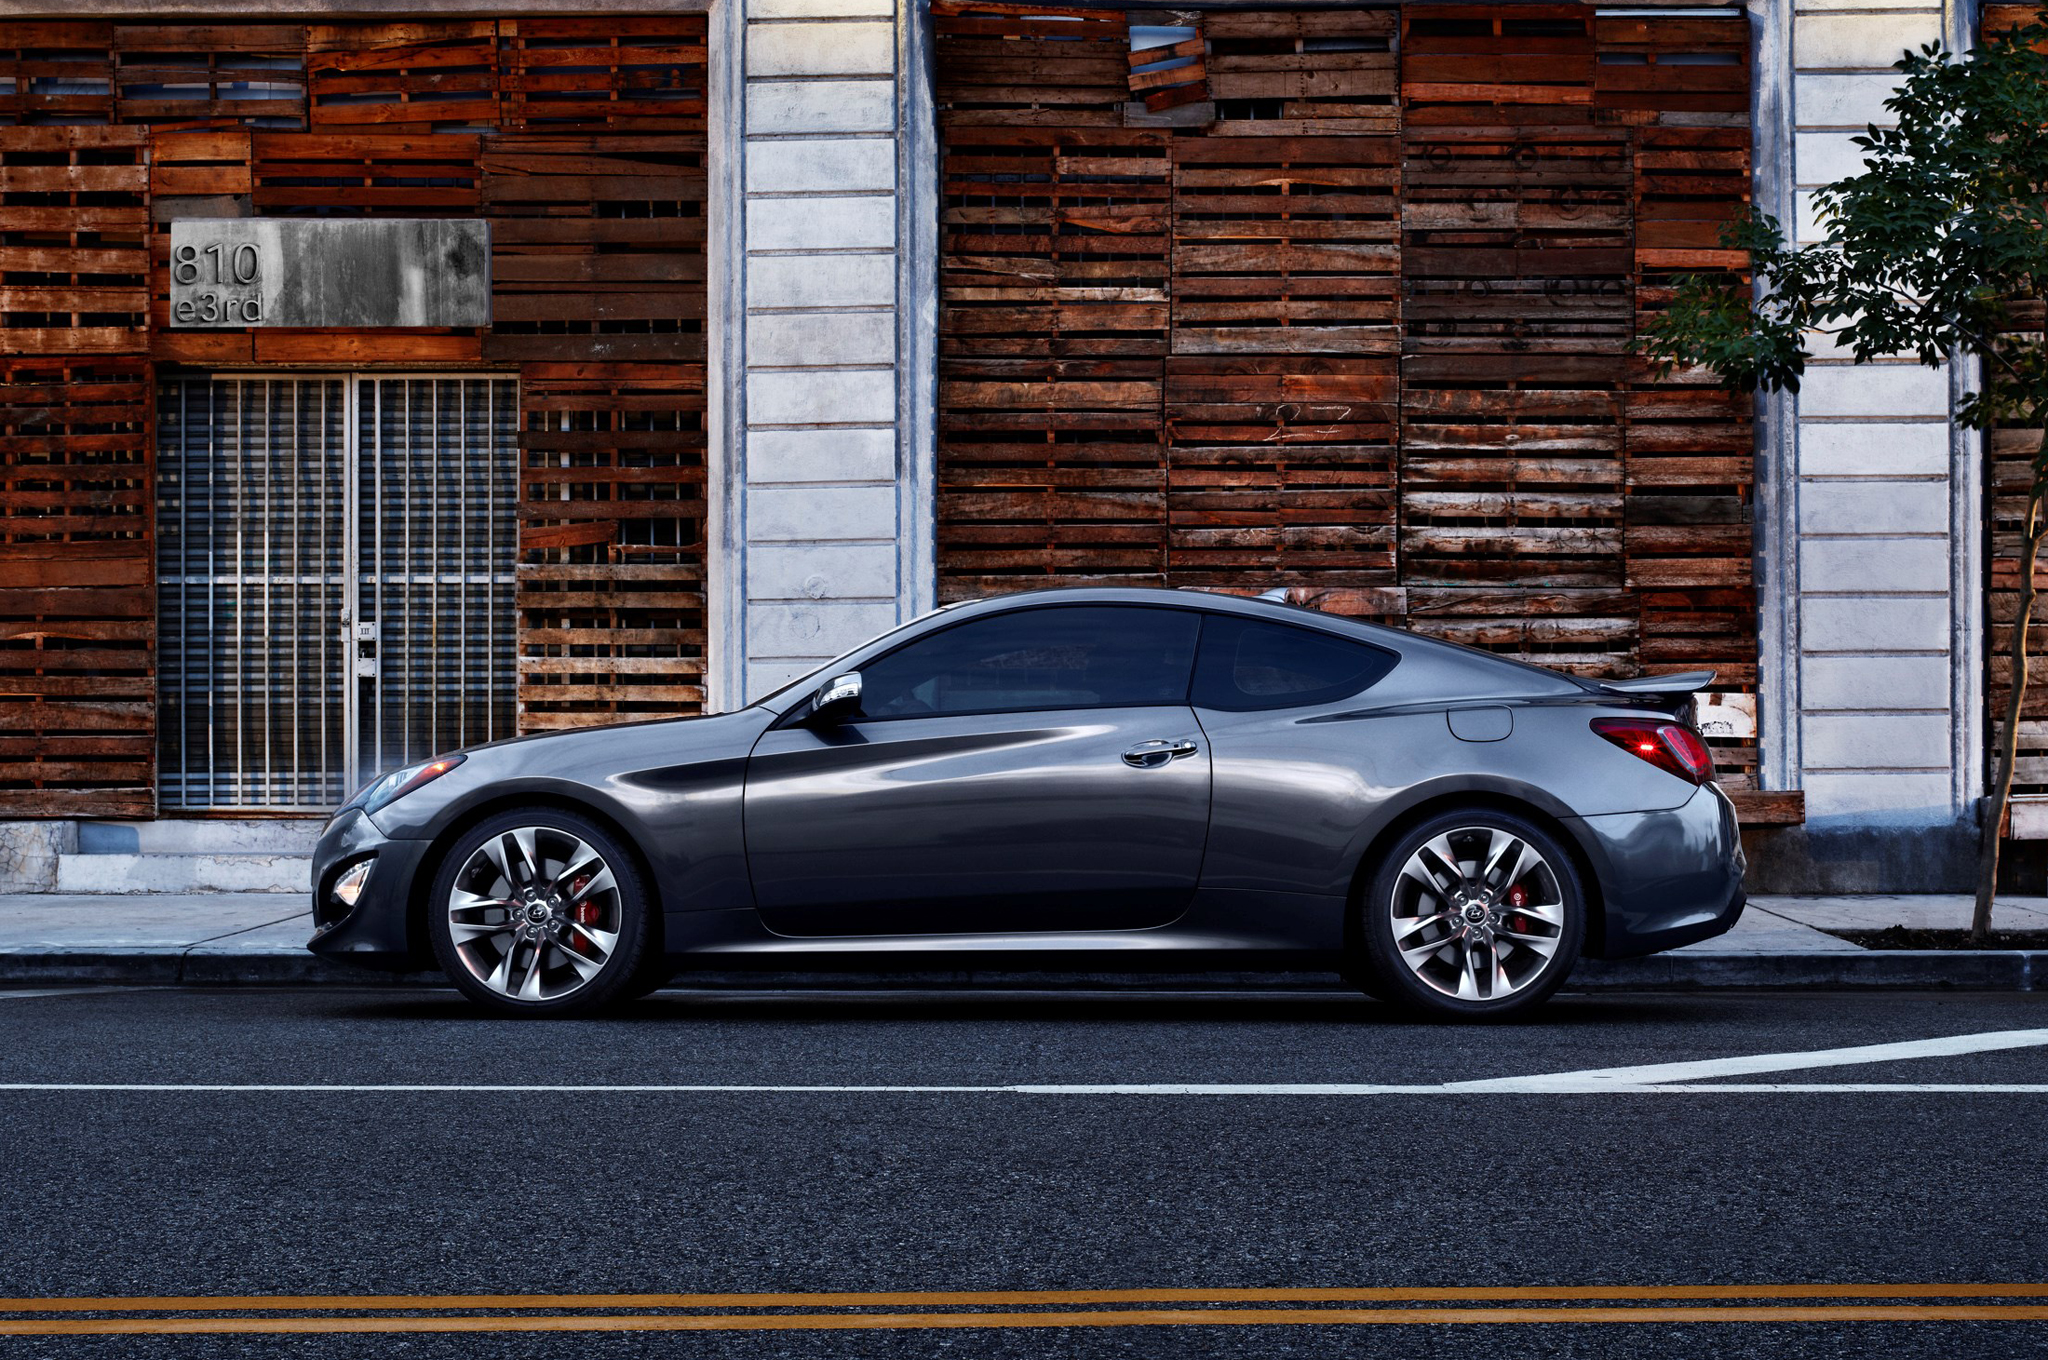 2019 Hyundai Genesis Coupe photo - 6